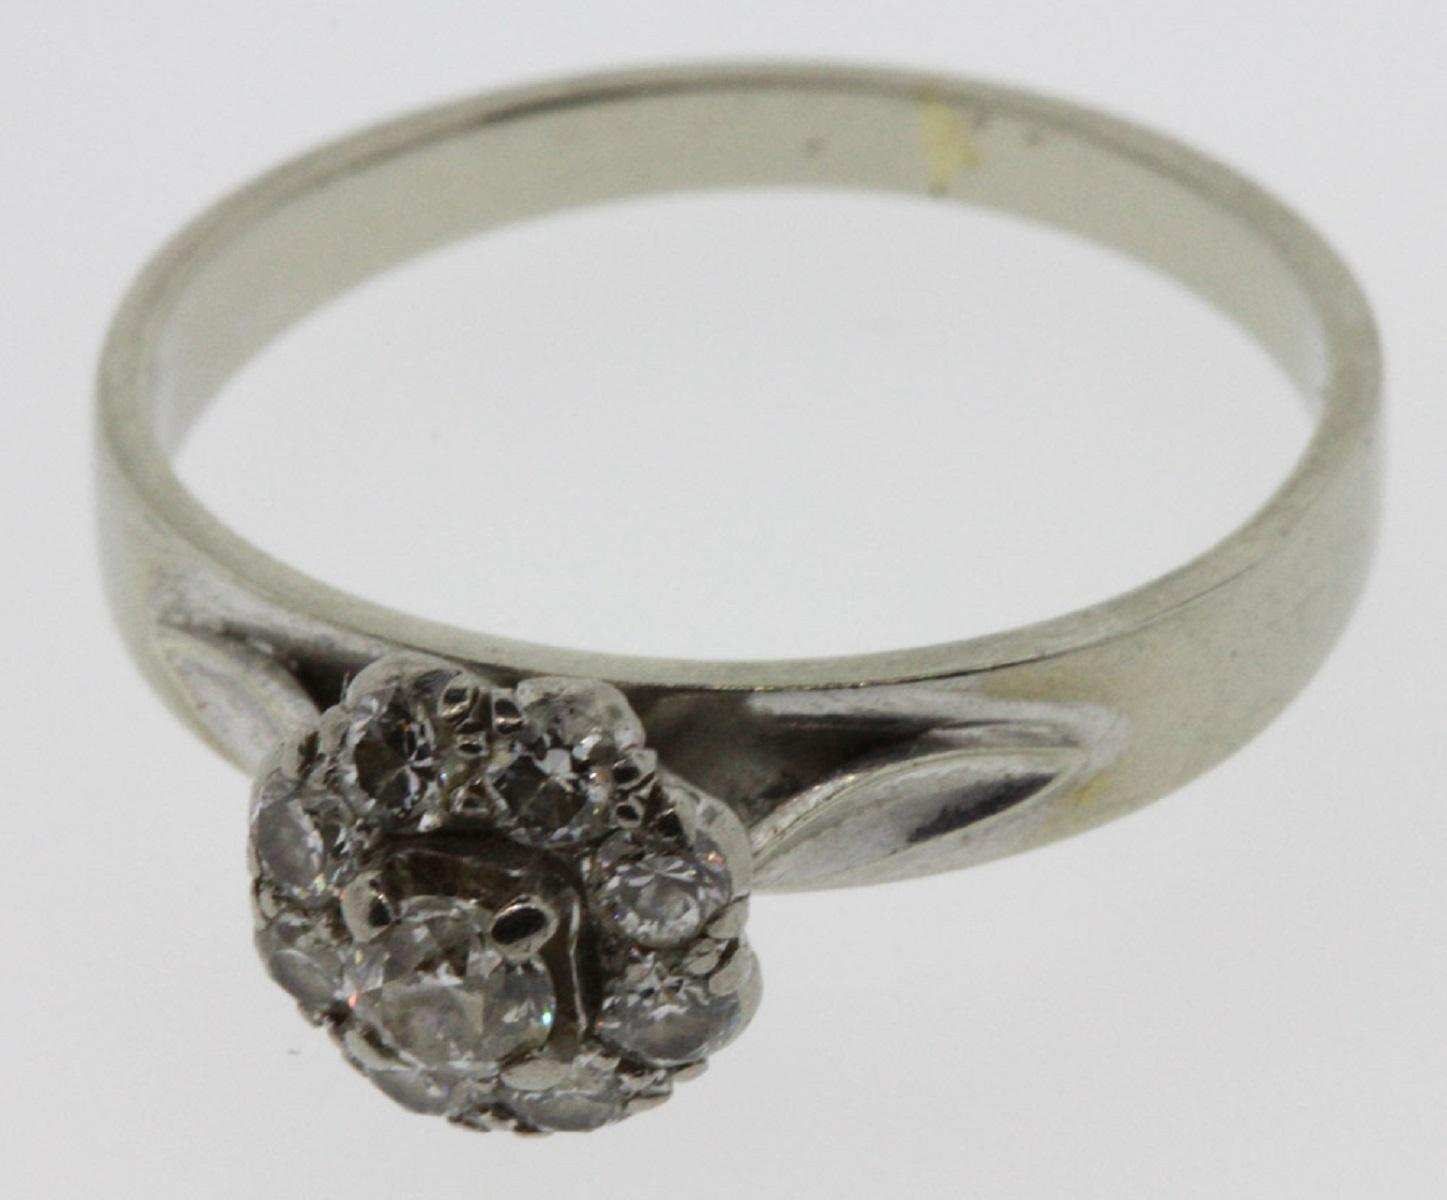 Vintage Old-cut Diamonds in an 18ct White Gold Ring